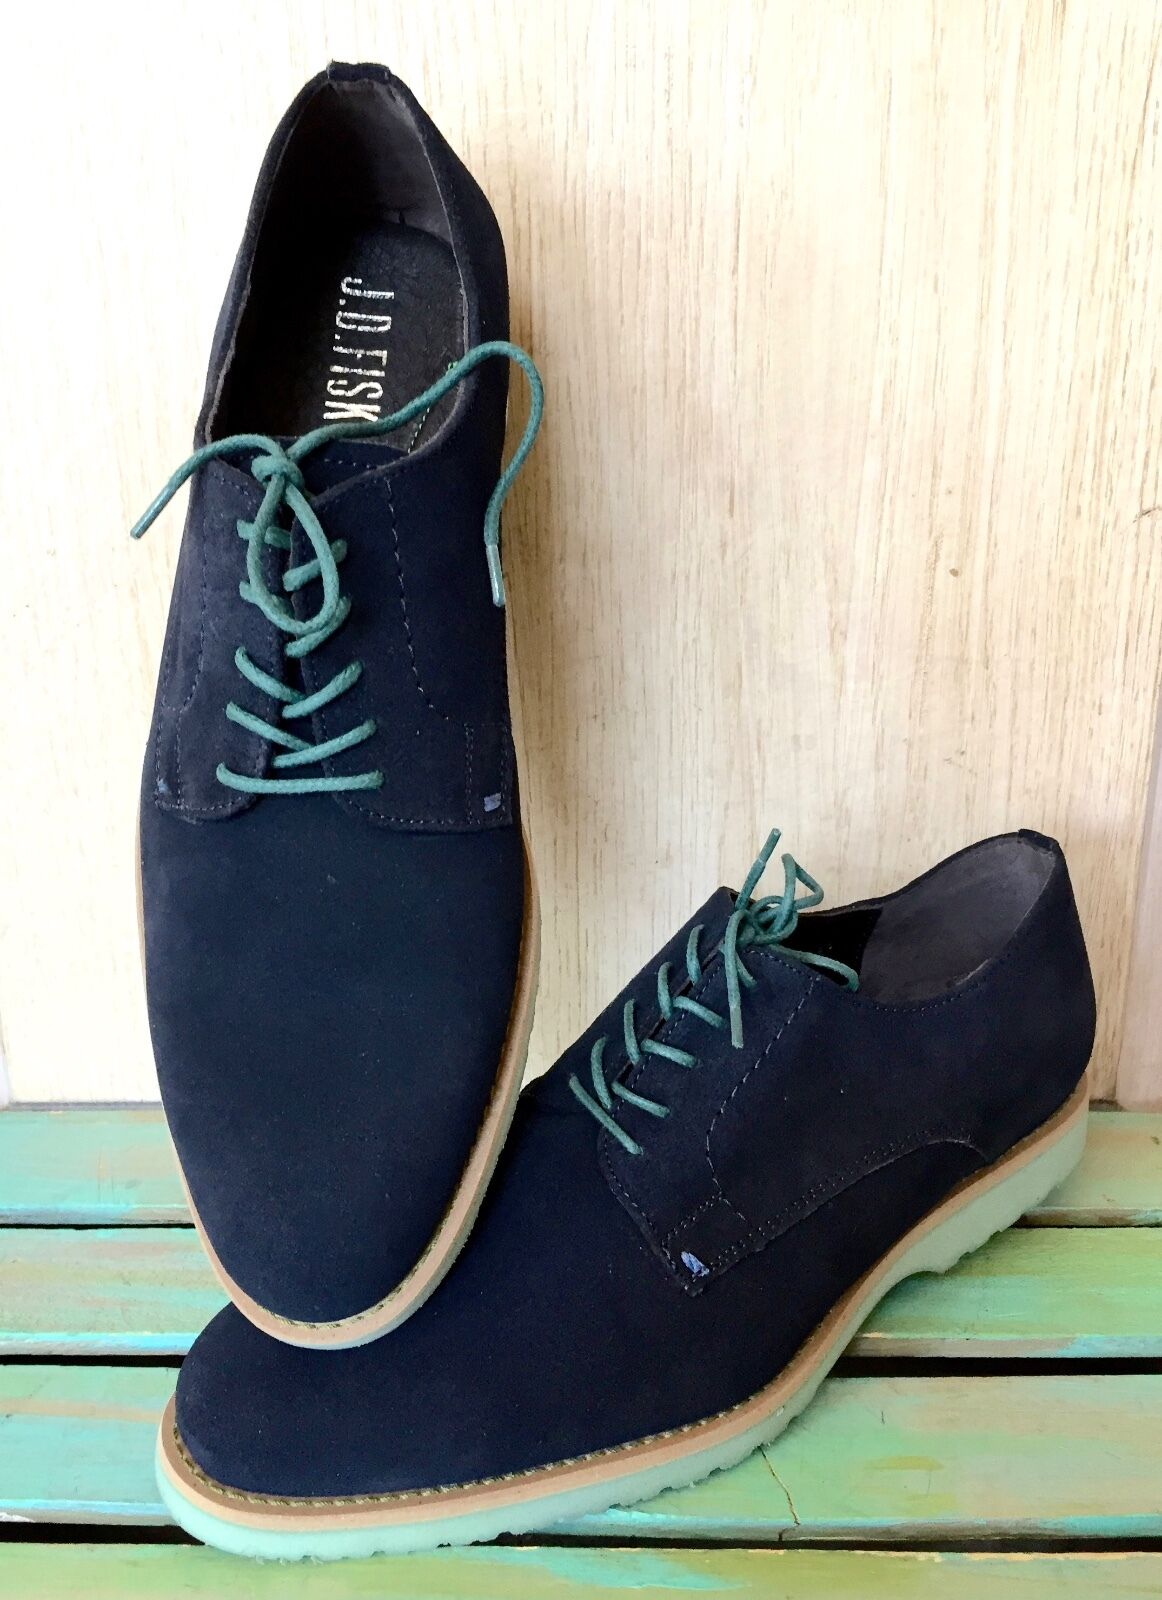 NIB J D Fisk Navy Suede Turquoise Rubber Sole Victor Lace Up Oxford Scarpe 9.5